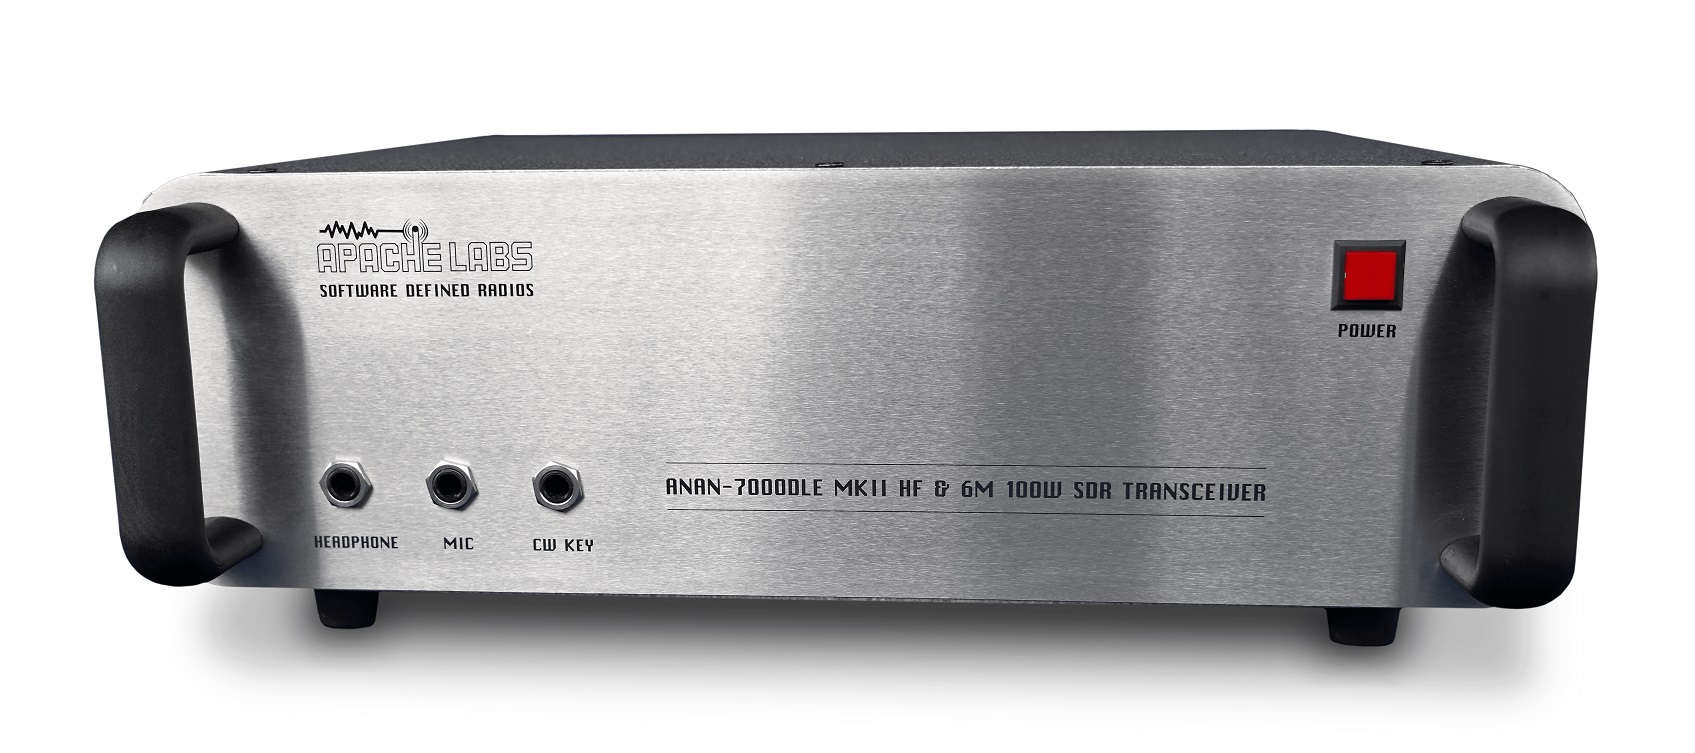 ANAN-7000DLE MKII 100W HF & 6M Transceiver (No Embedded PC) s1